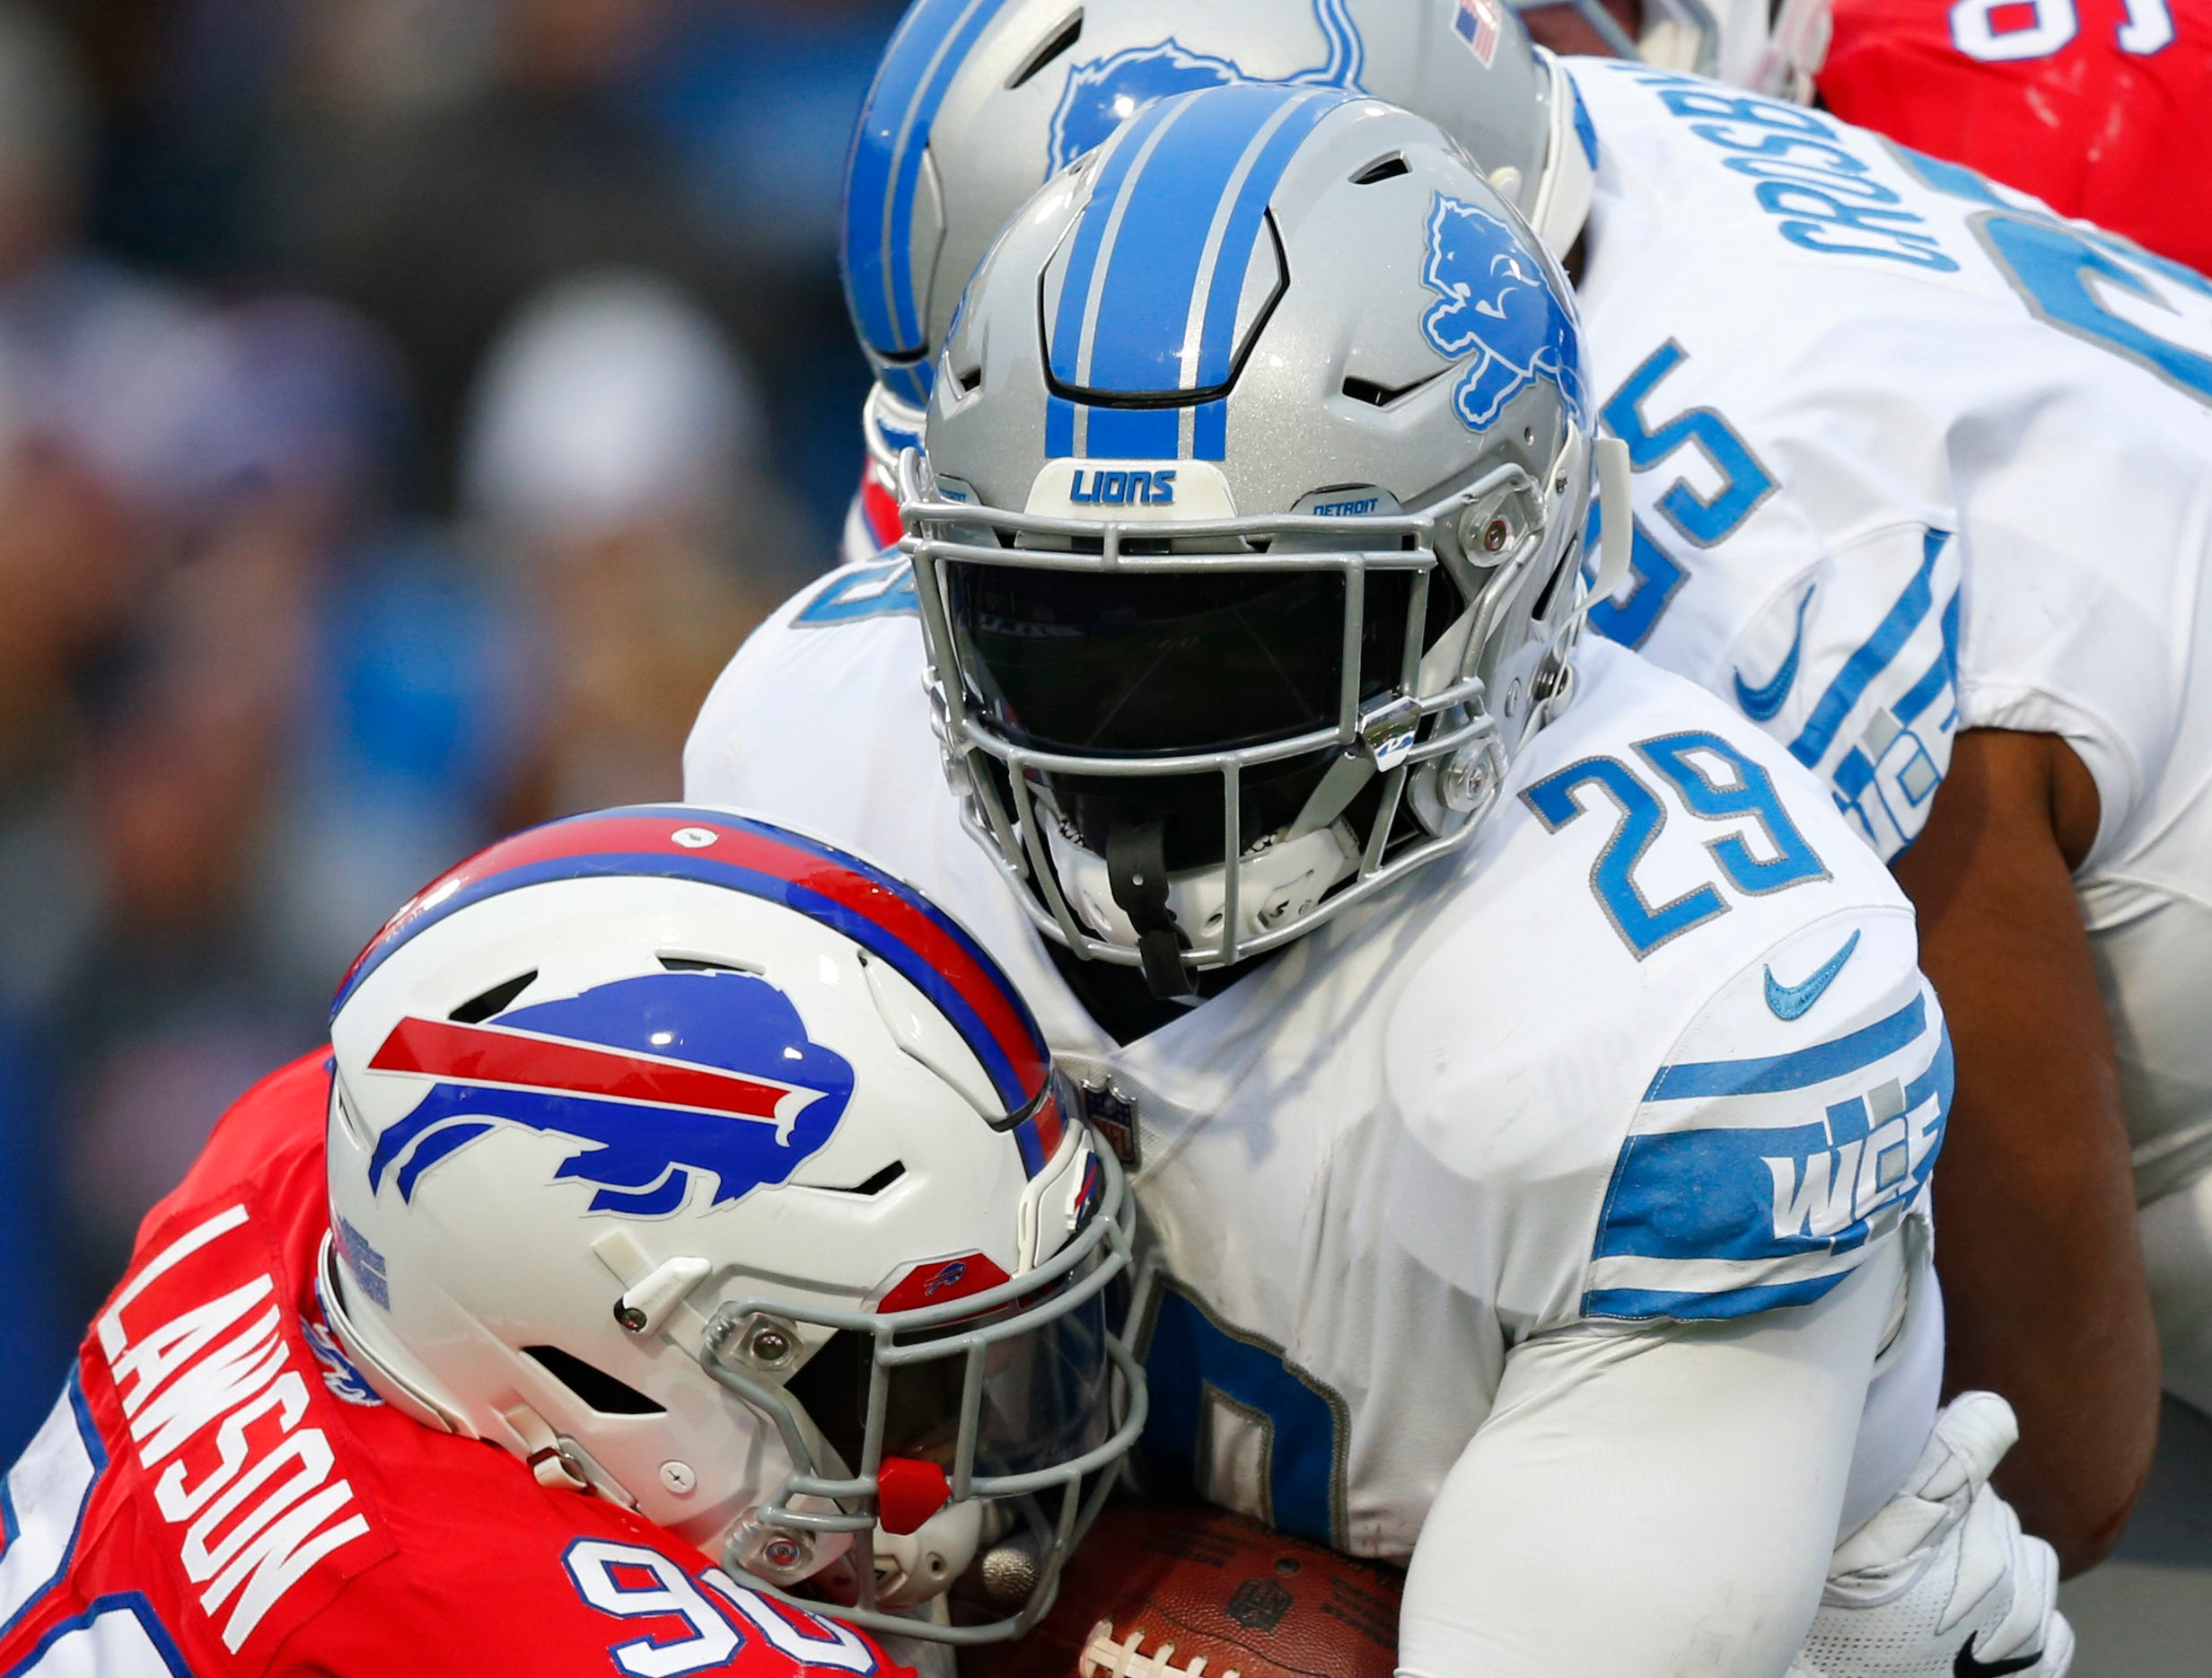 Detroit Lions running back LeGarrette Blount (29) is tackled by Buffalo Bills defensive end Shaq Lawson (90) during the second half.